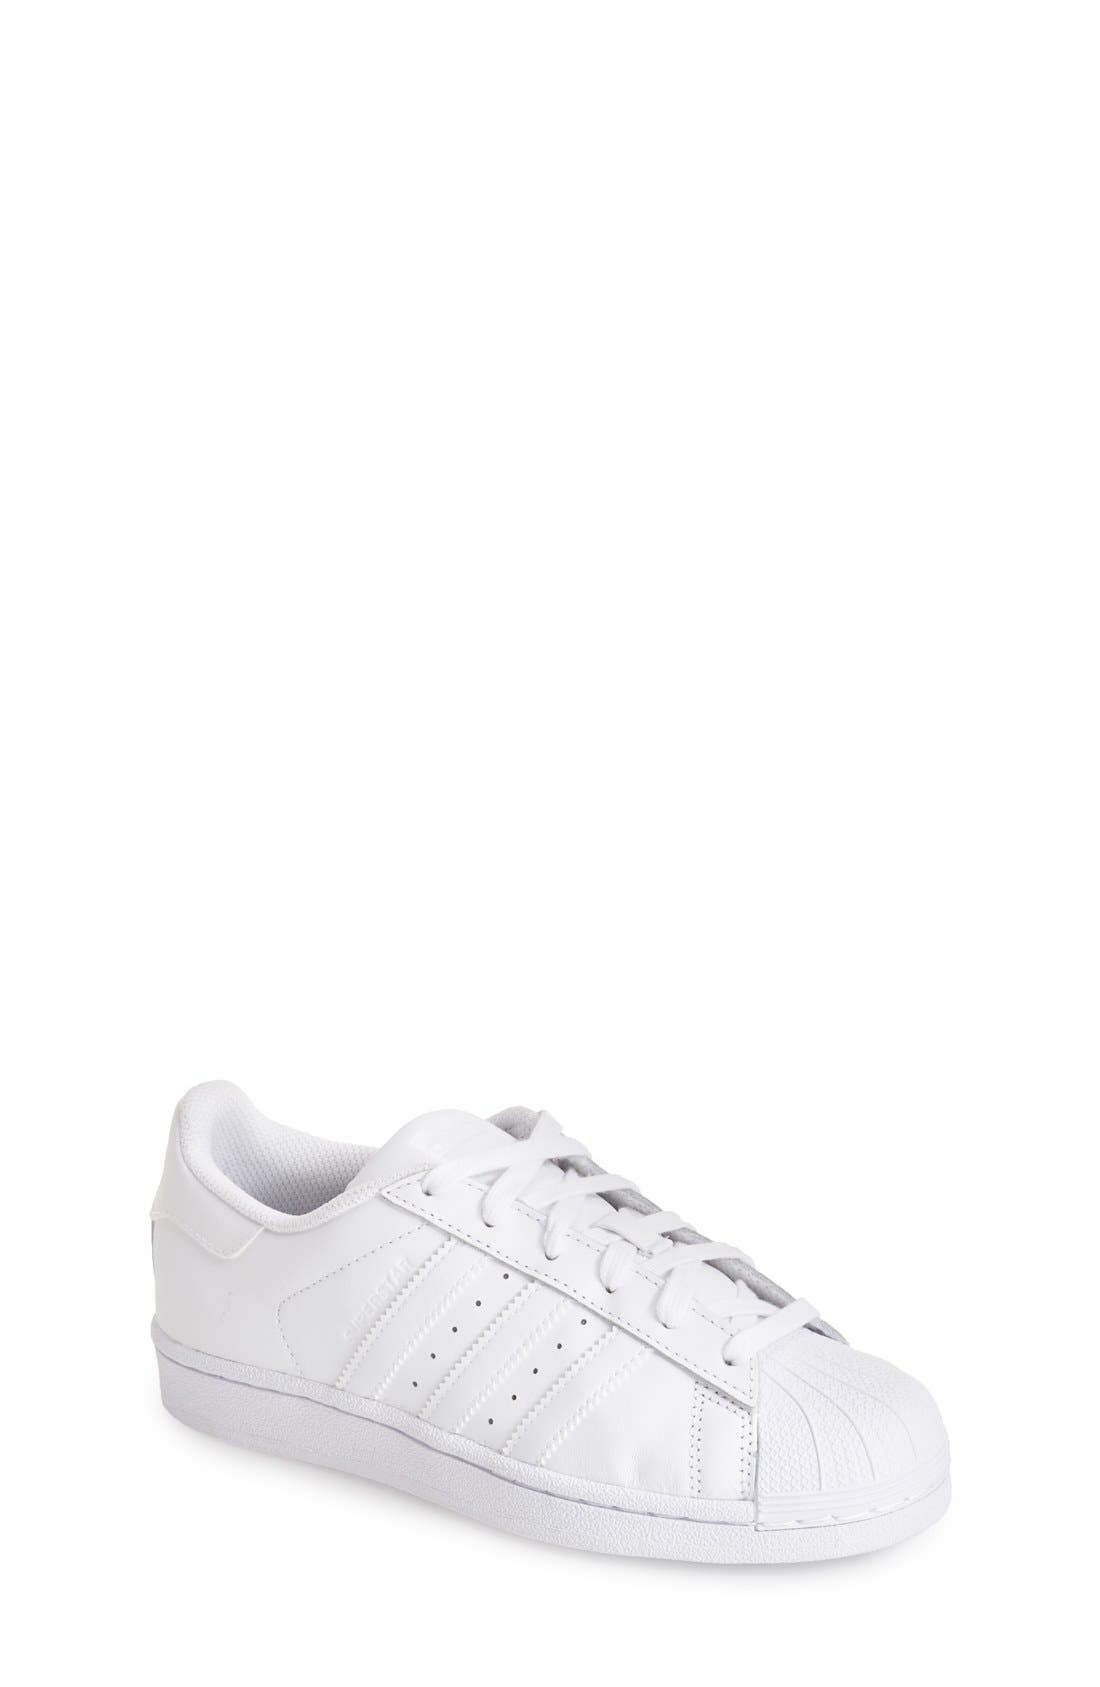 Main Image - adidas \u0027Superstar 2\u0027 Sneaker (Big Kid)